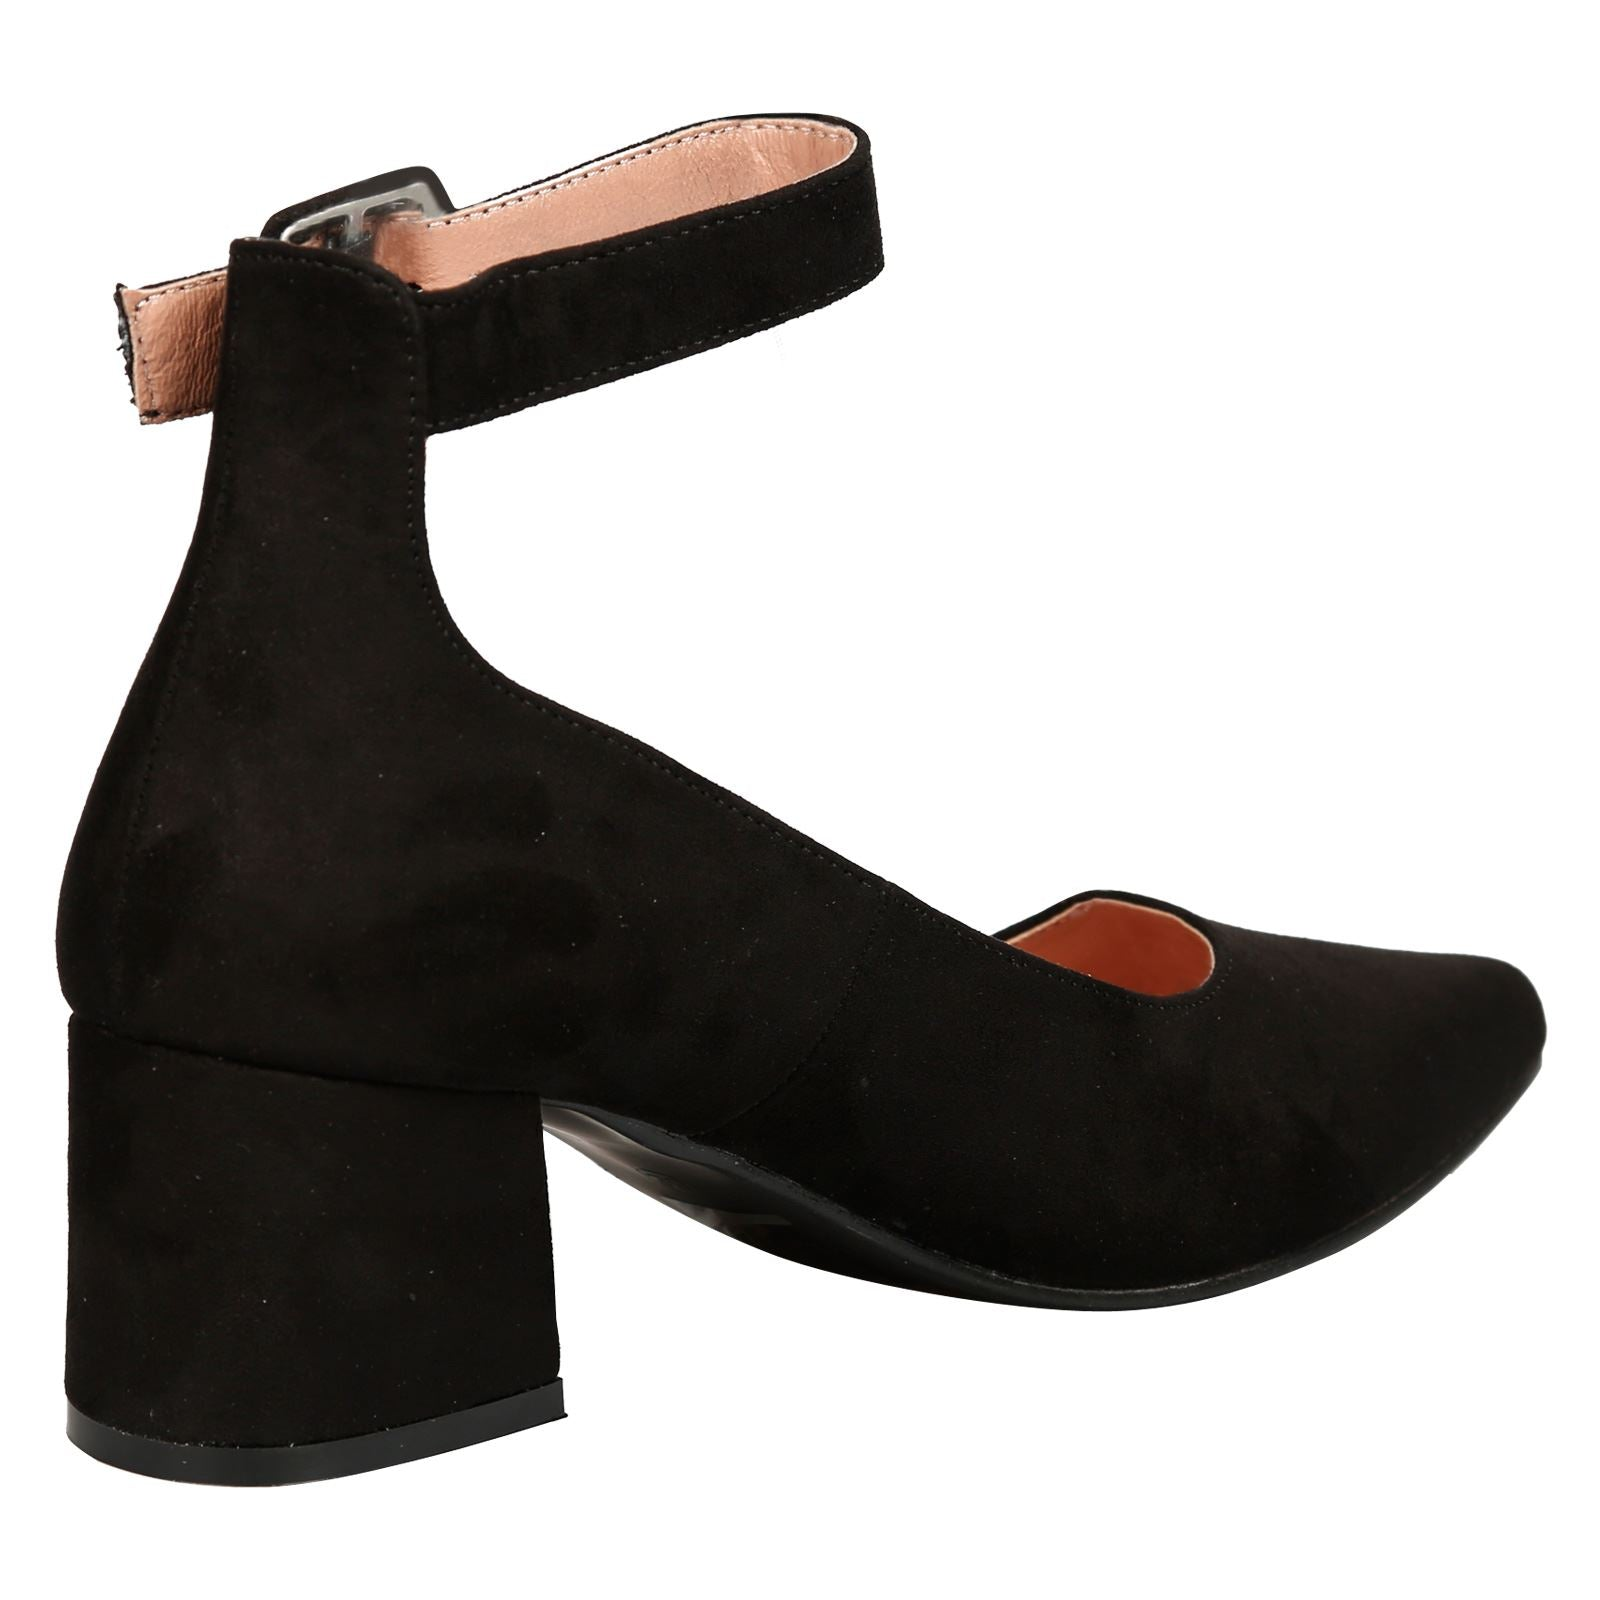 Annalise Ankle Cuff Low Heel Shoes in Black Faux Suede